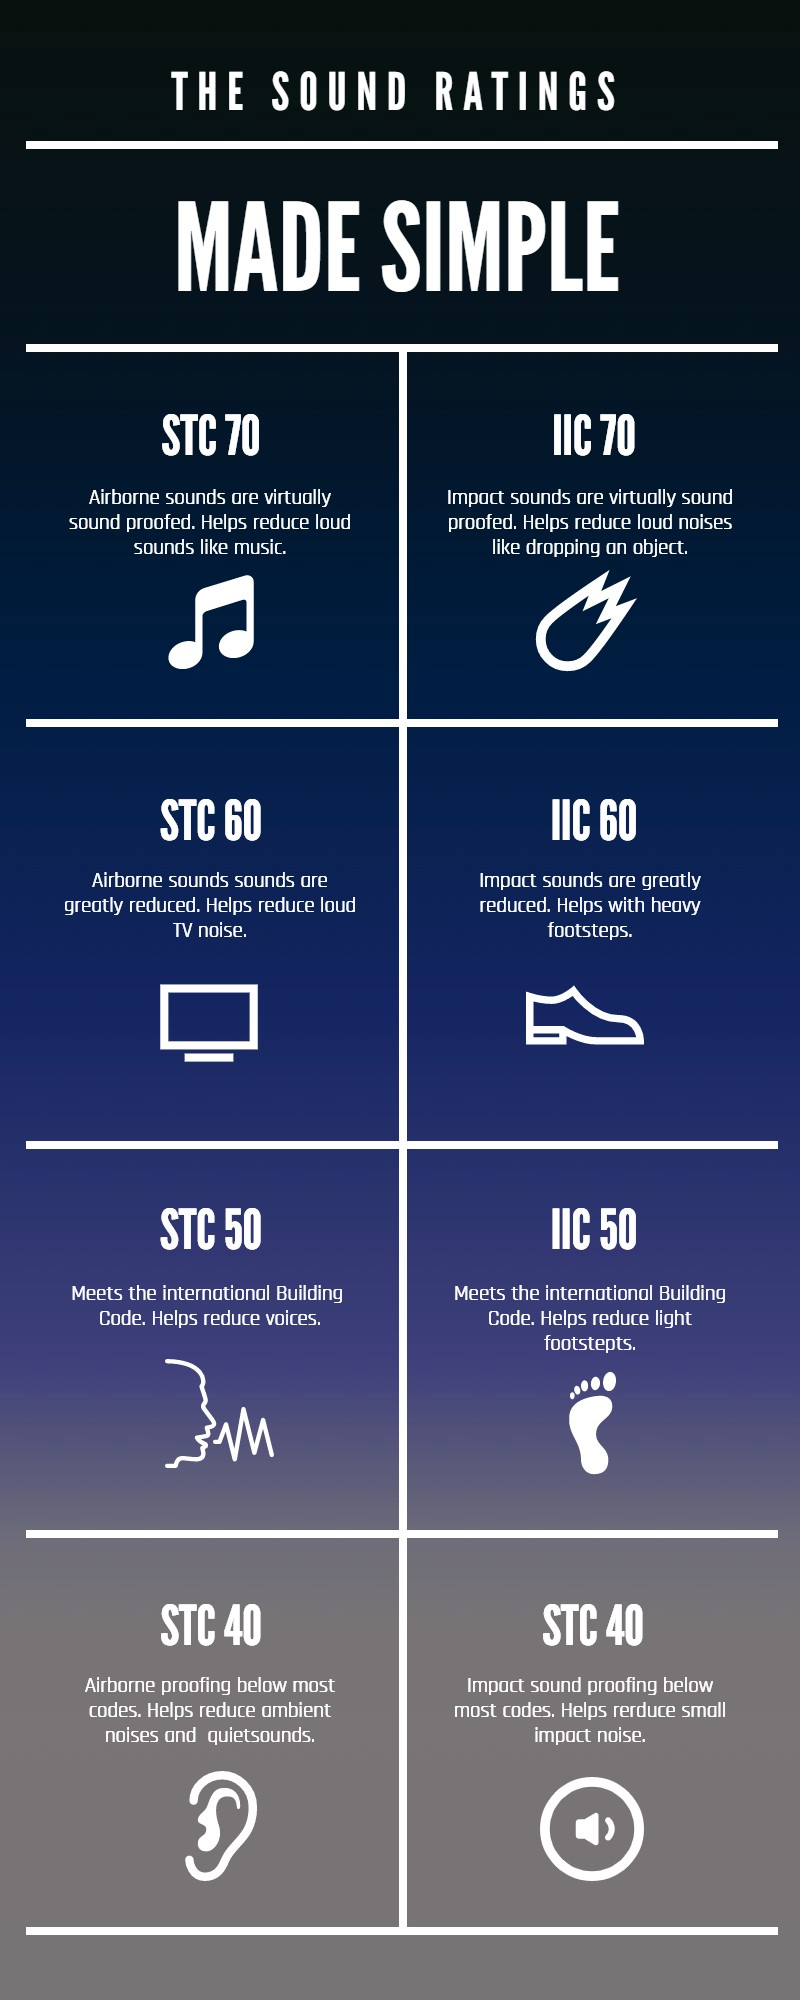 sound-ratings-made-simple-infographic